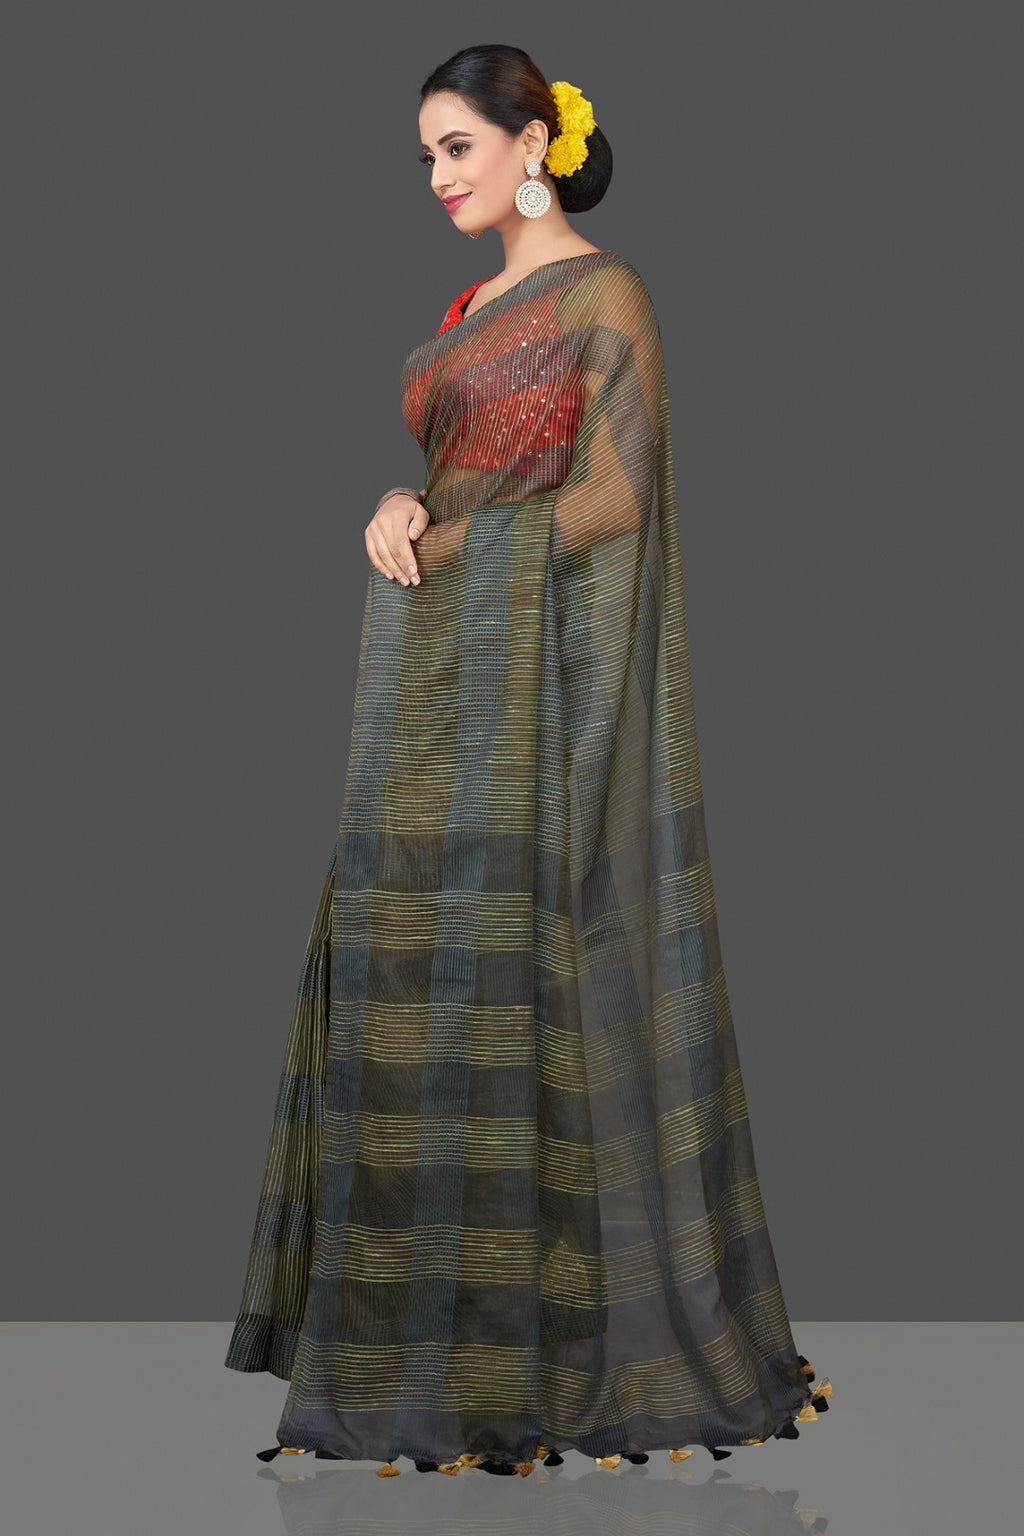 Shop stunning olive green and grey tussar sari online in USA with organza pallu and red  mirror work sari blouse. Shop handowoven sarees, designer saree blouses, embroidered sarees, designer sarees, pure silk sarees, tussar saris online in USA from Pure Elegance Indian saree store.-pallu